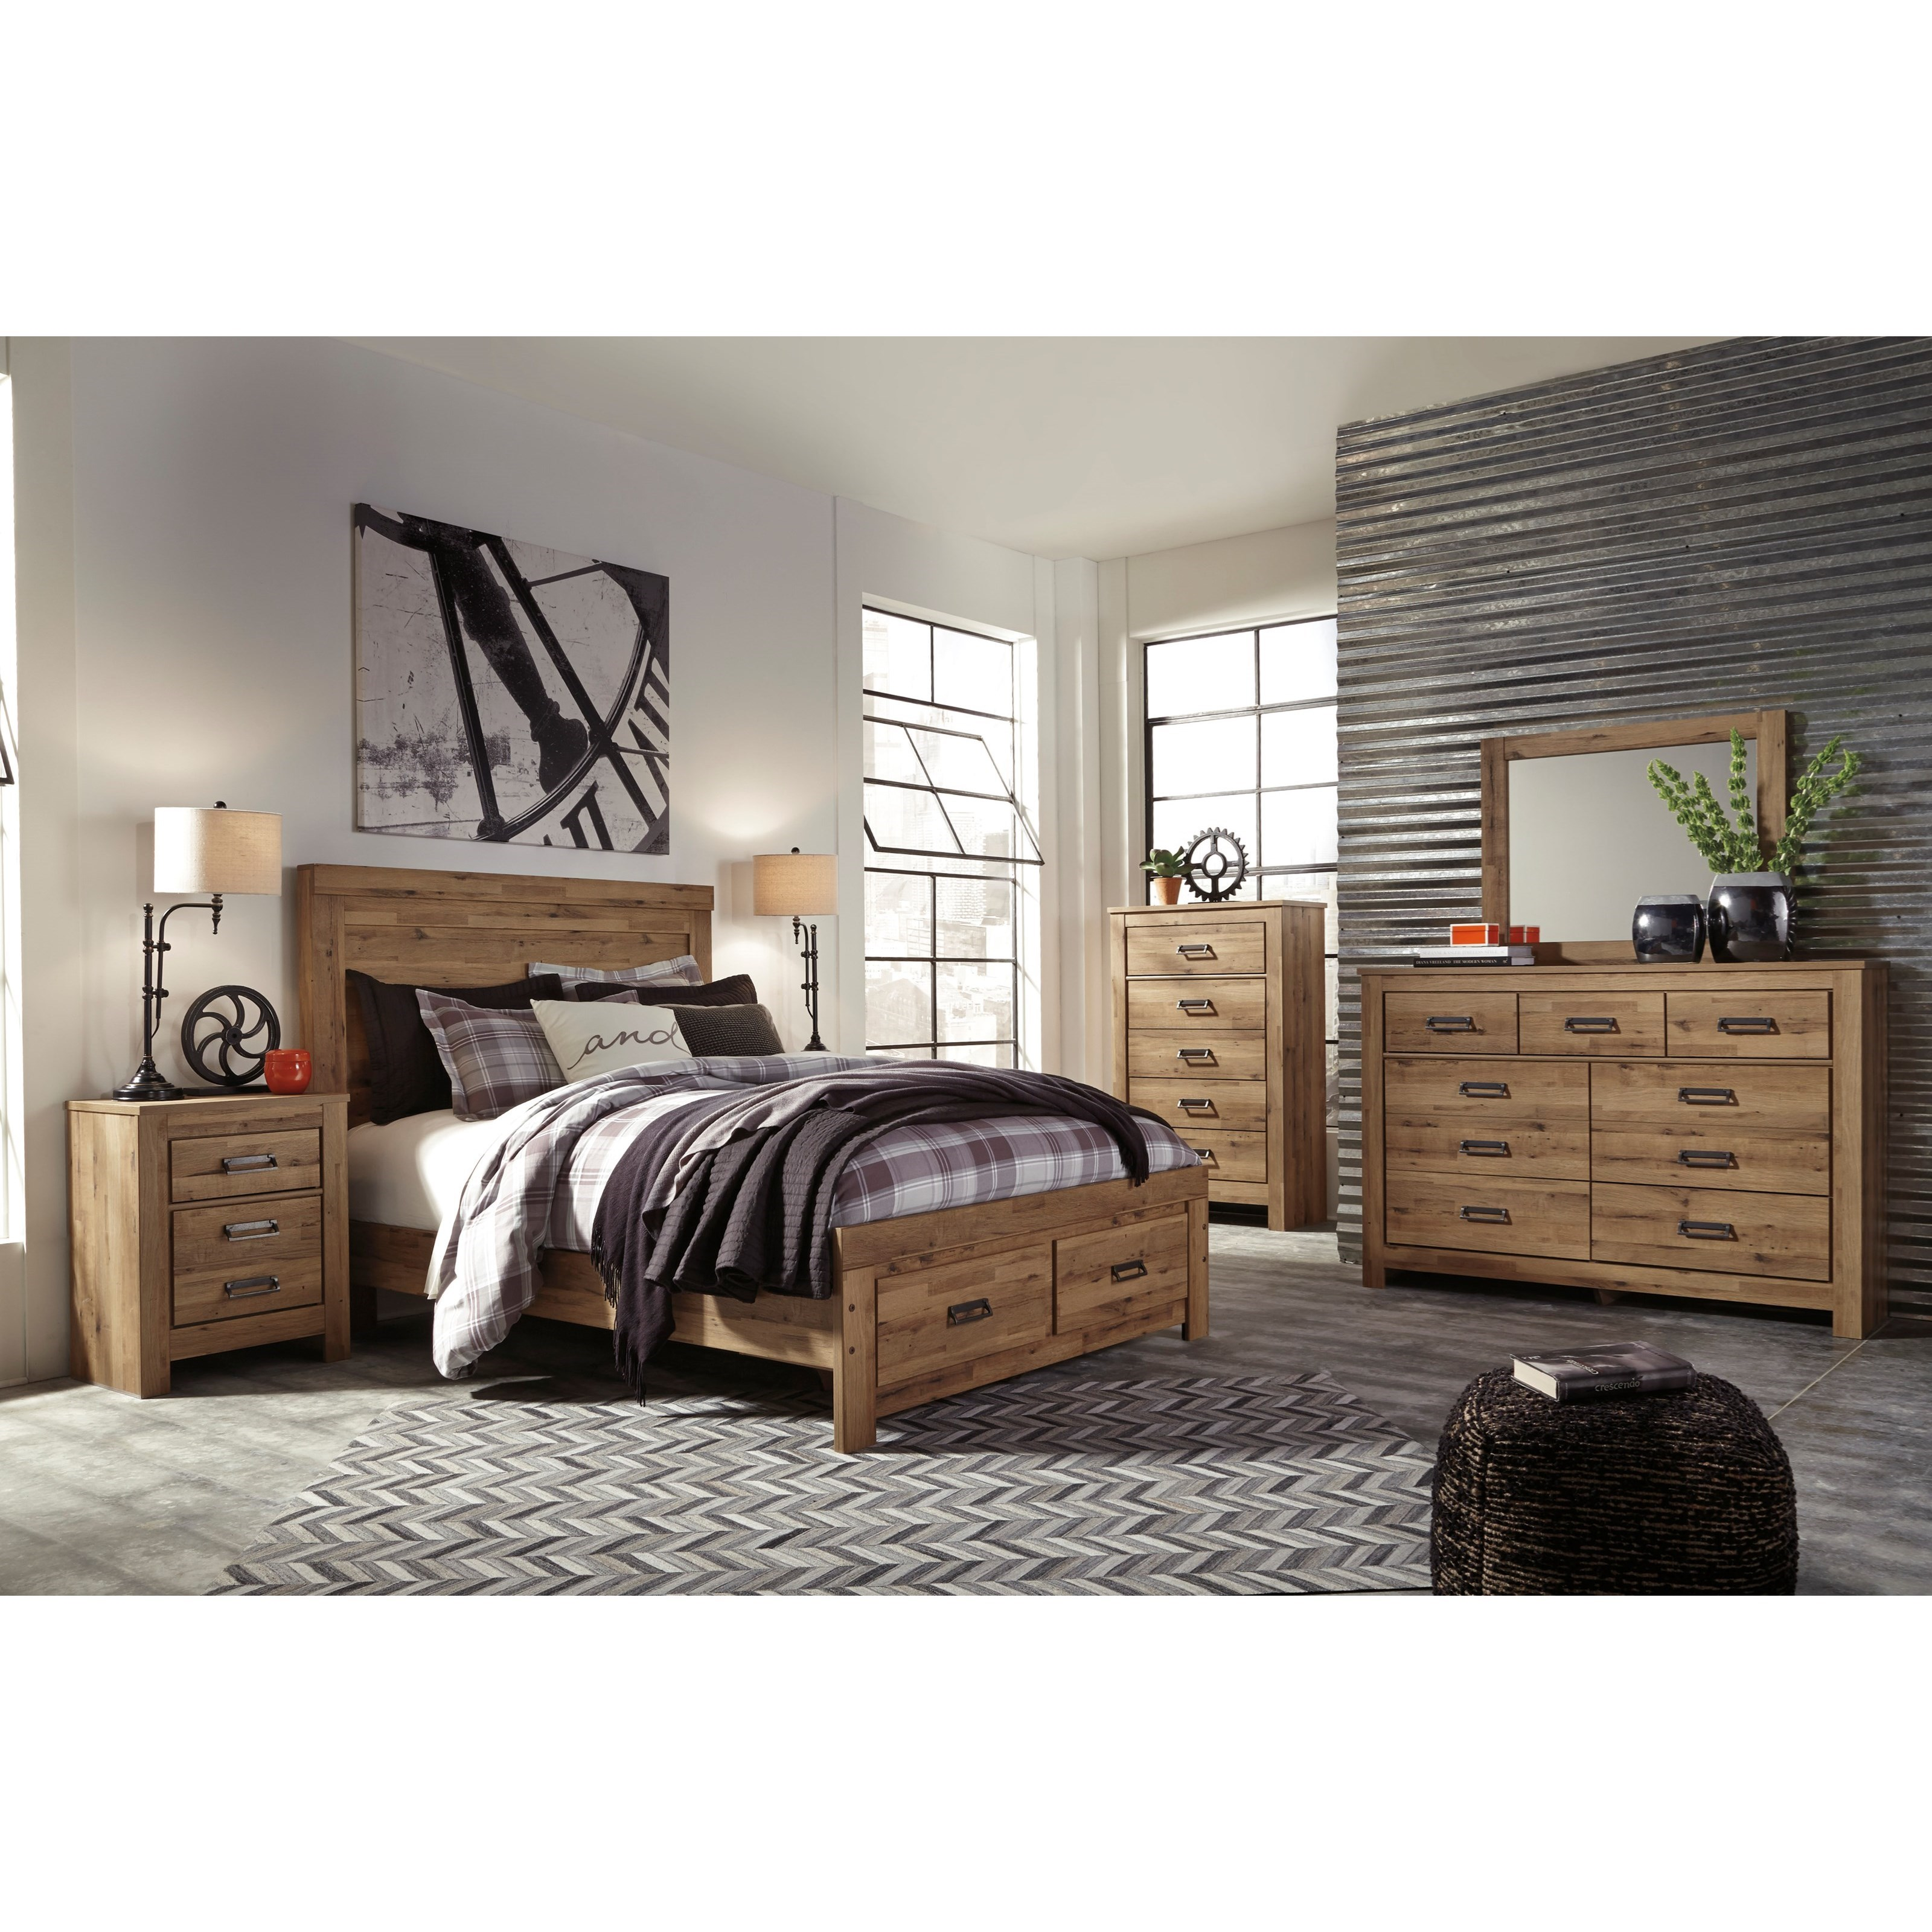 Signature design by ashley cinrey queen bedroom group for Bedroom furniture groups